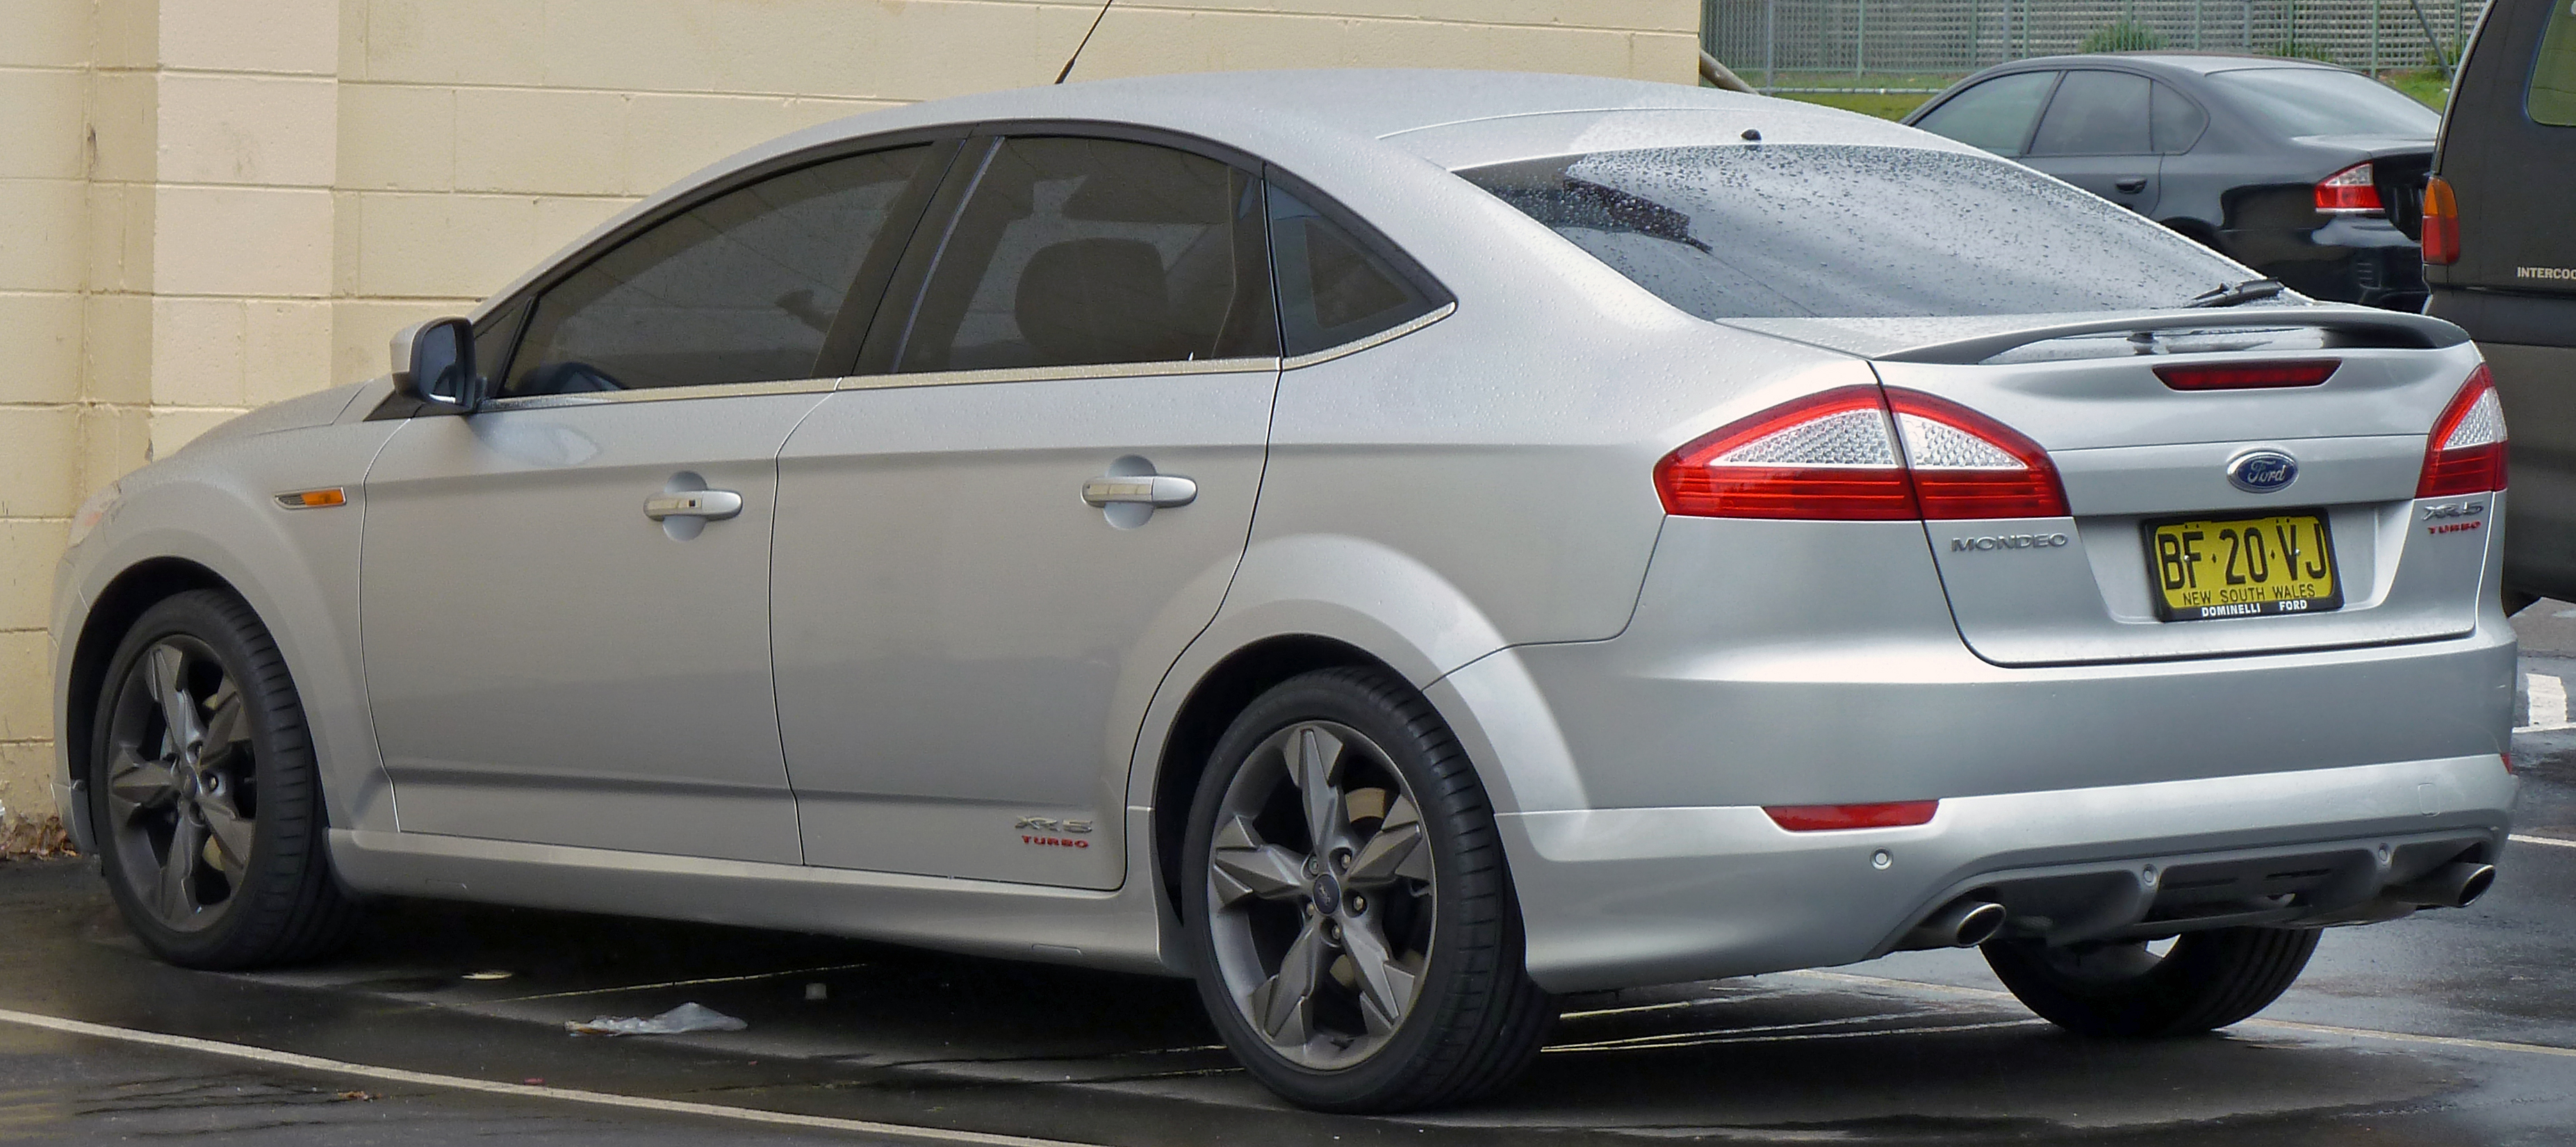 file 2009 2010 ford mondeo mb xr5 turbo hatchback. Black Bedroom Furniture Sets. Home Design Ideas